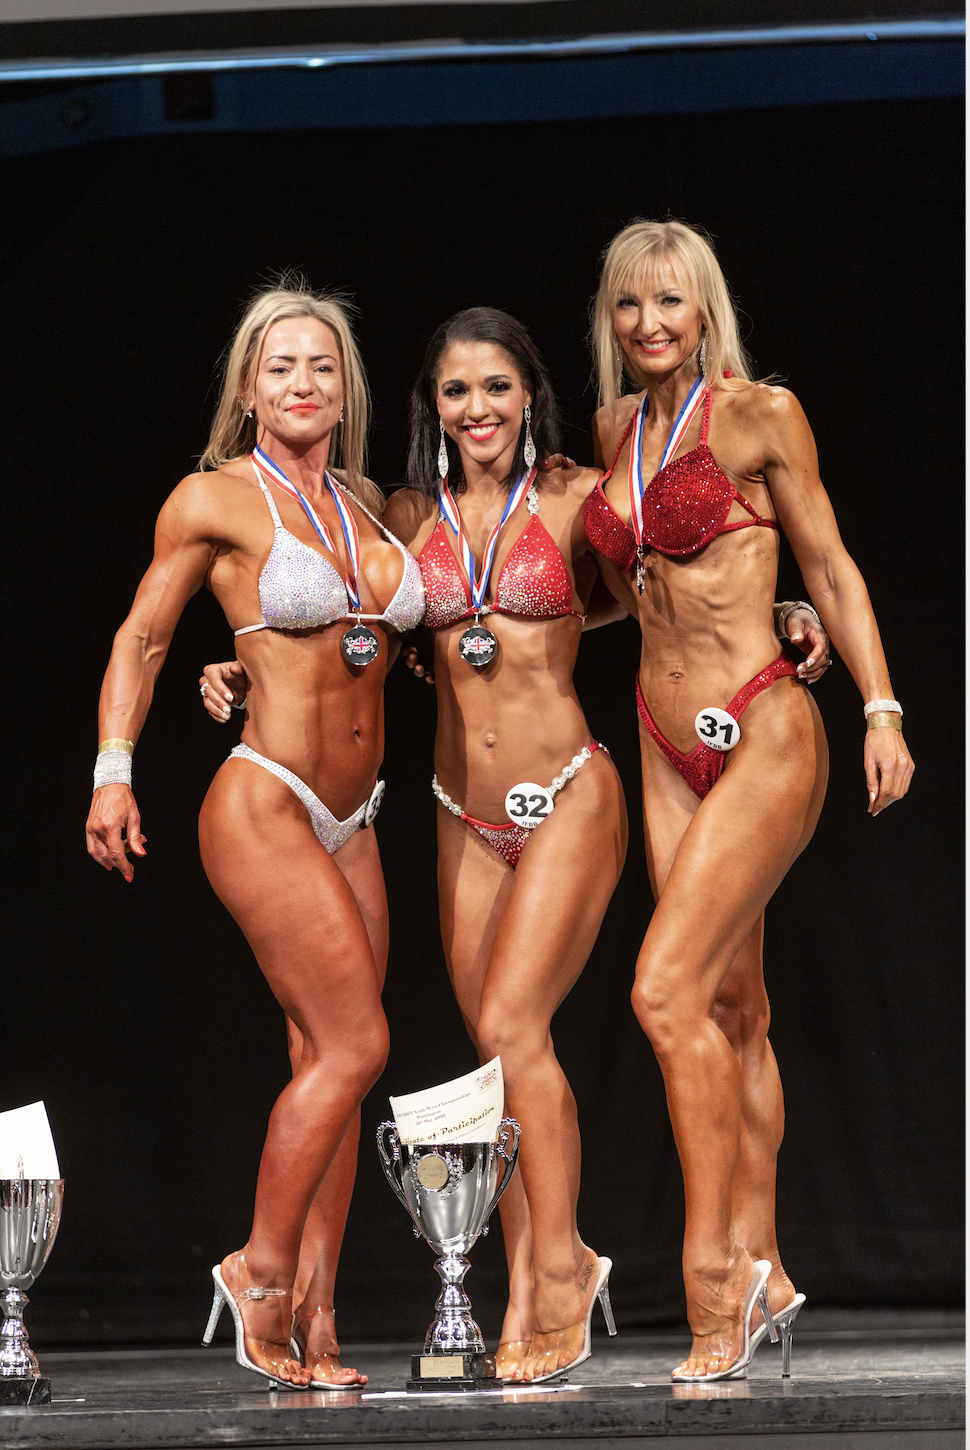 Martine Warmann wins masters bikini fitness.